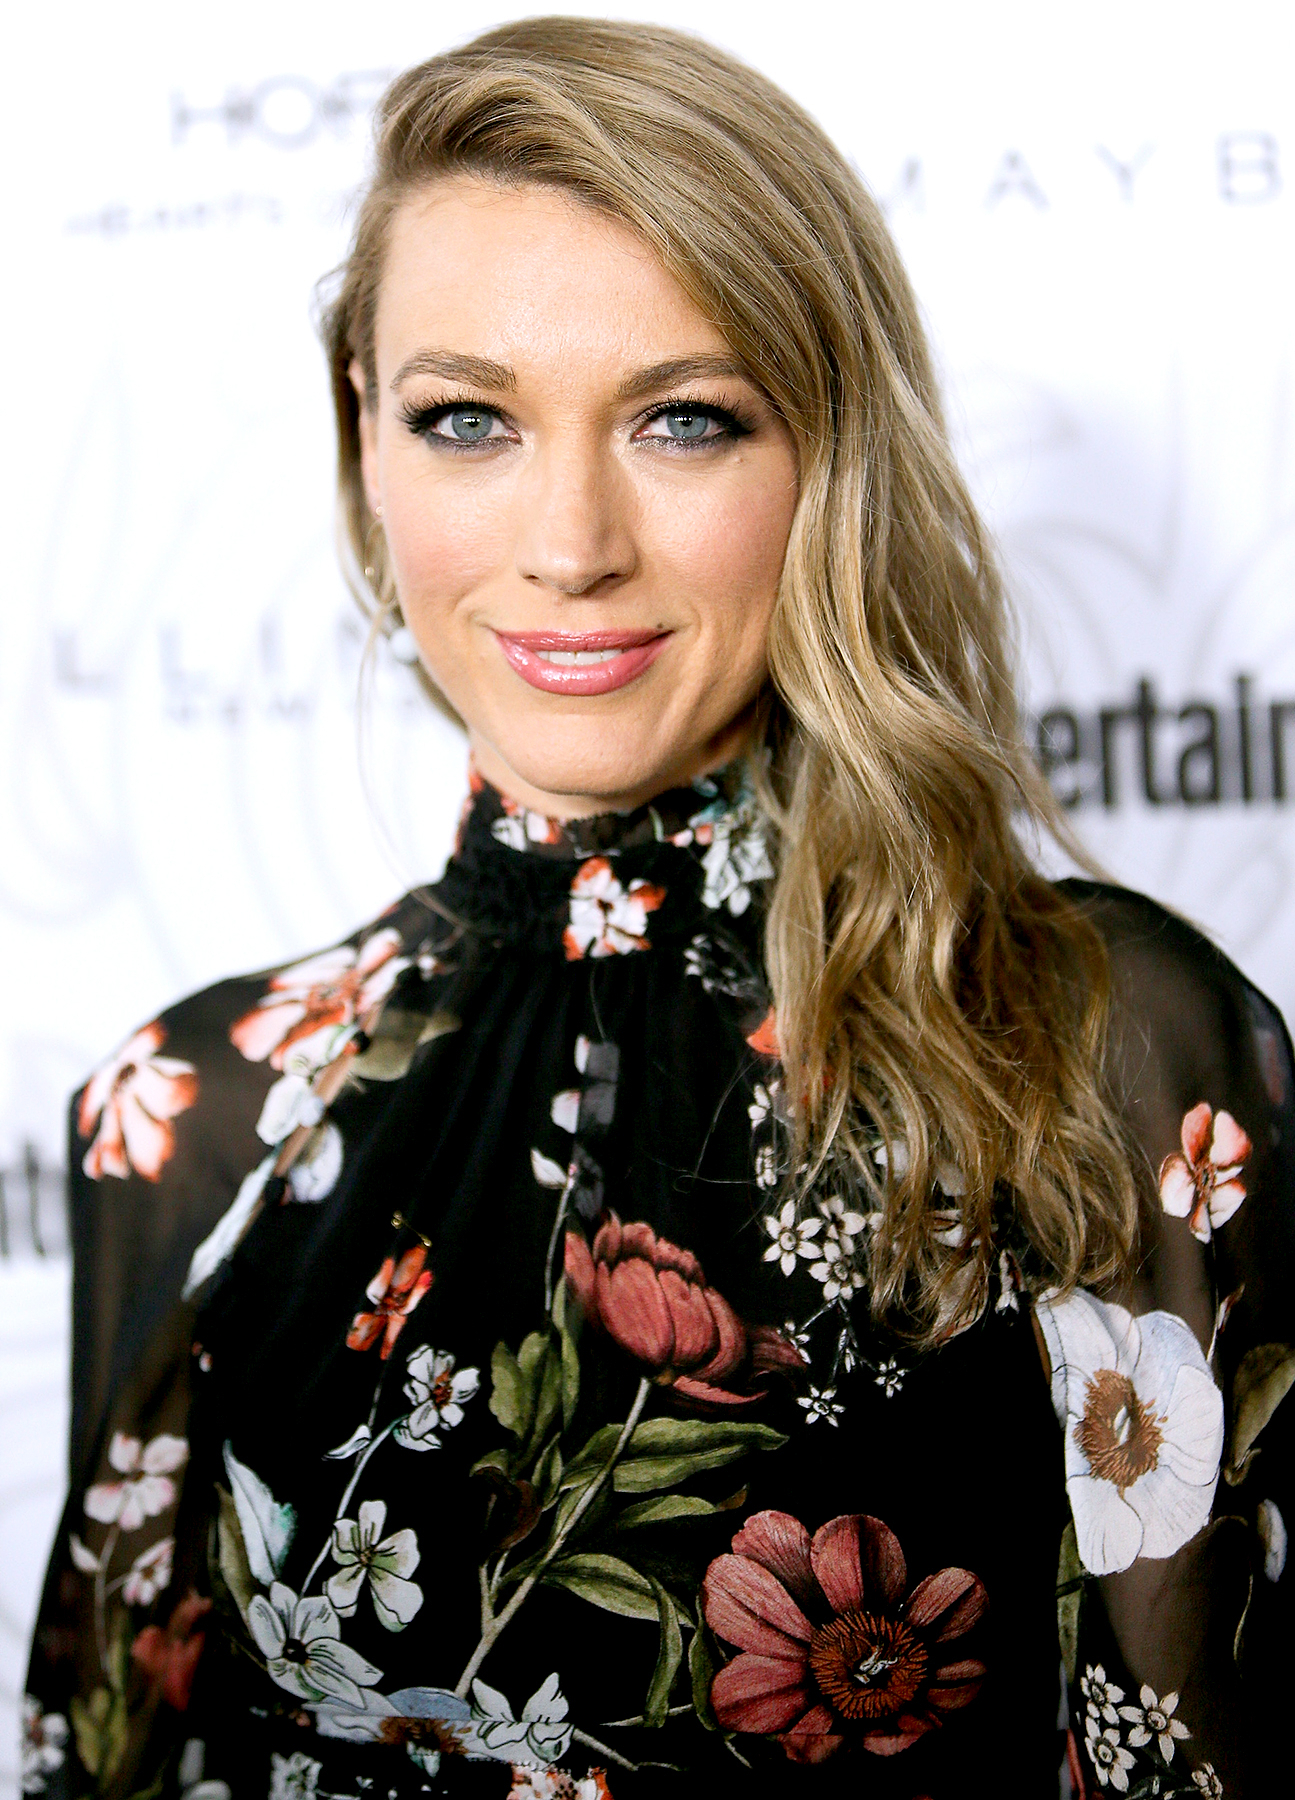 Natalie Zea arrives at the Entertainment Weekly celebration honoring nominees for The Screen Actors Guild Awards at the Chateau Marmont on January 28, 2017 in Los Angeles, California.